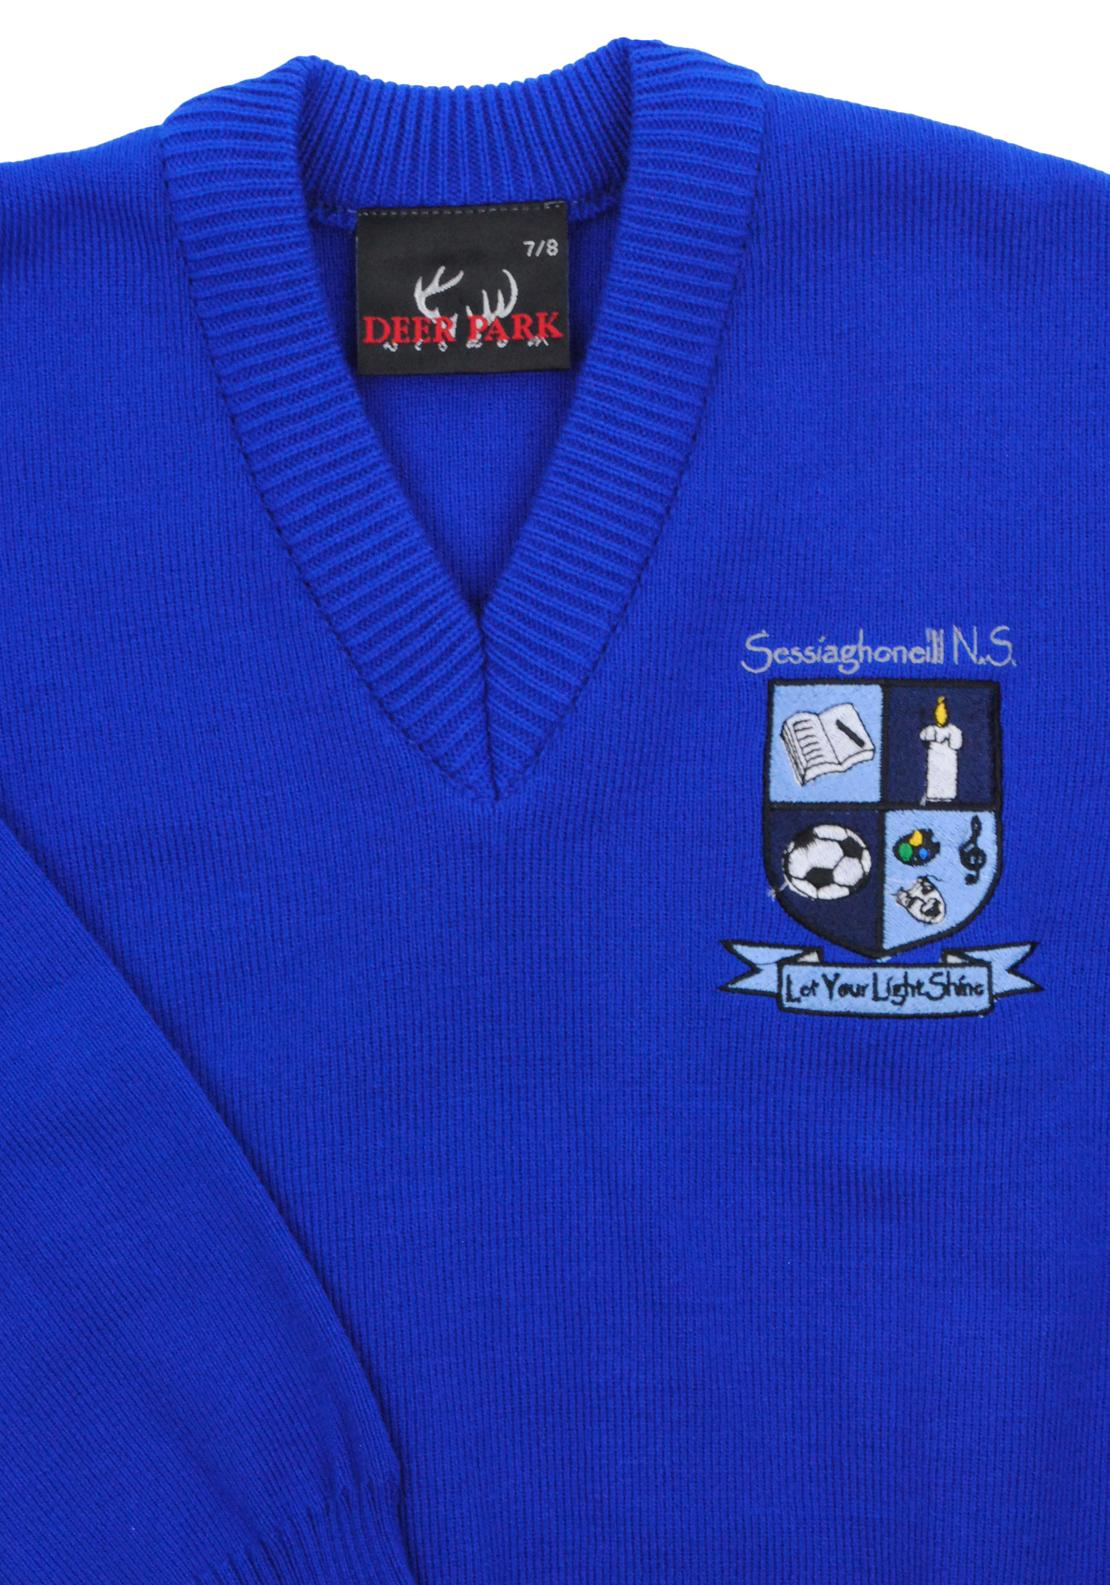 Deer Park Sessiaghoneill N. S Crested Jumper, Blue